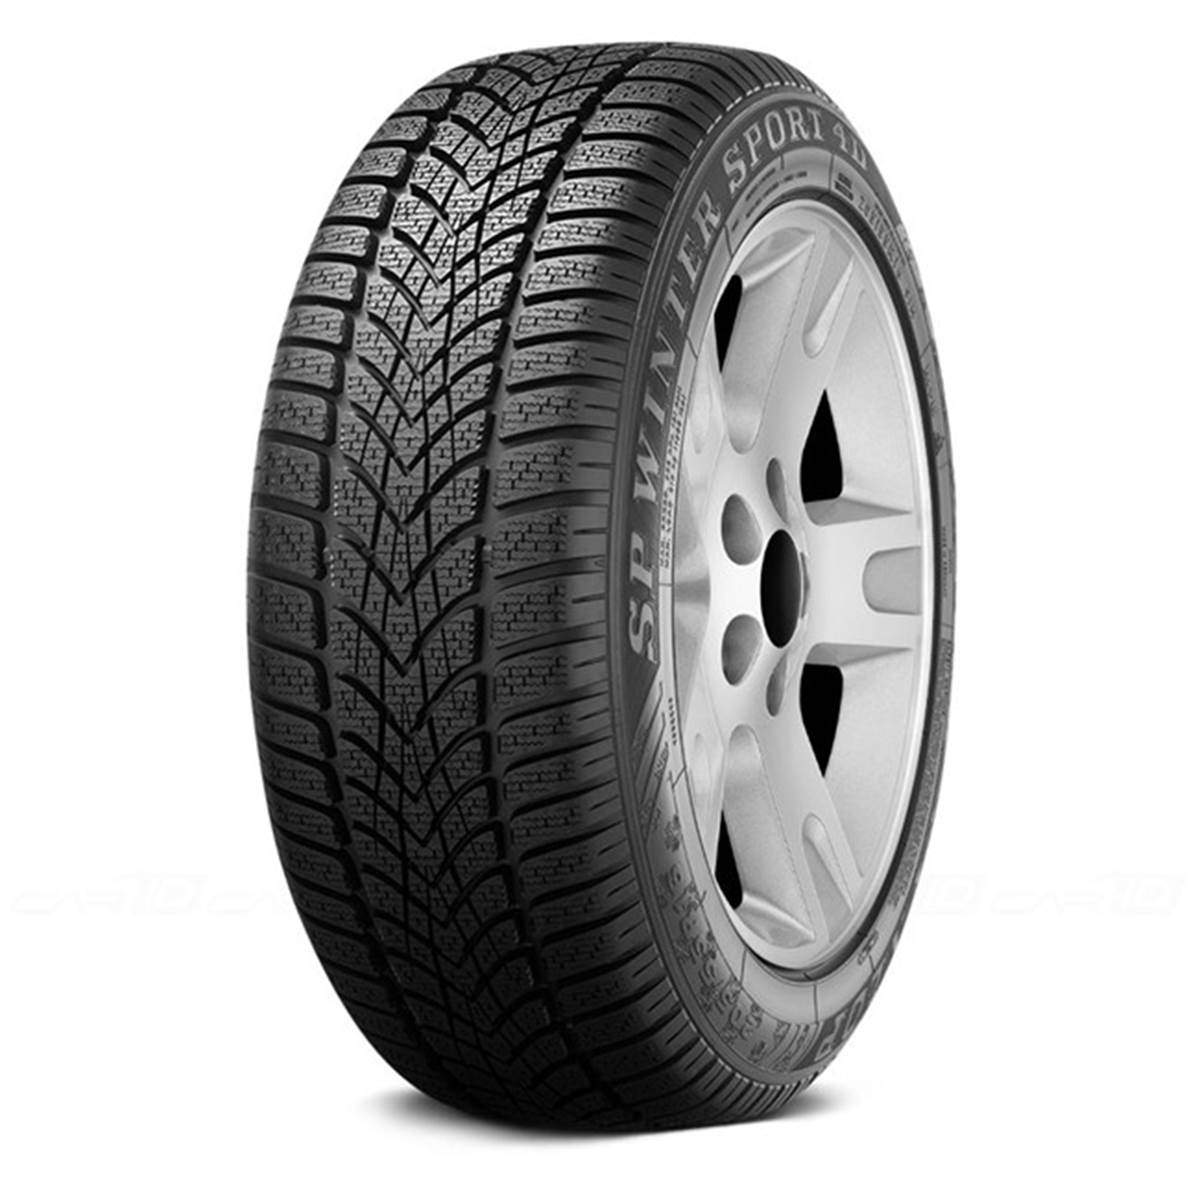 Dunlop Sp Winter Sport 4d Moextended / Fuel Efficiency: C, Wet Grip: C, Ext. Rolling Noise: 71db, Rolling Noise Class: B